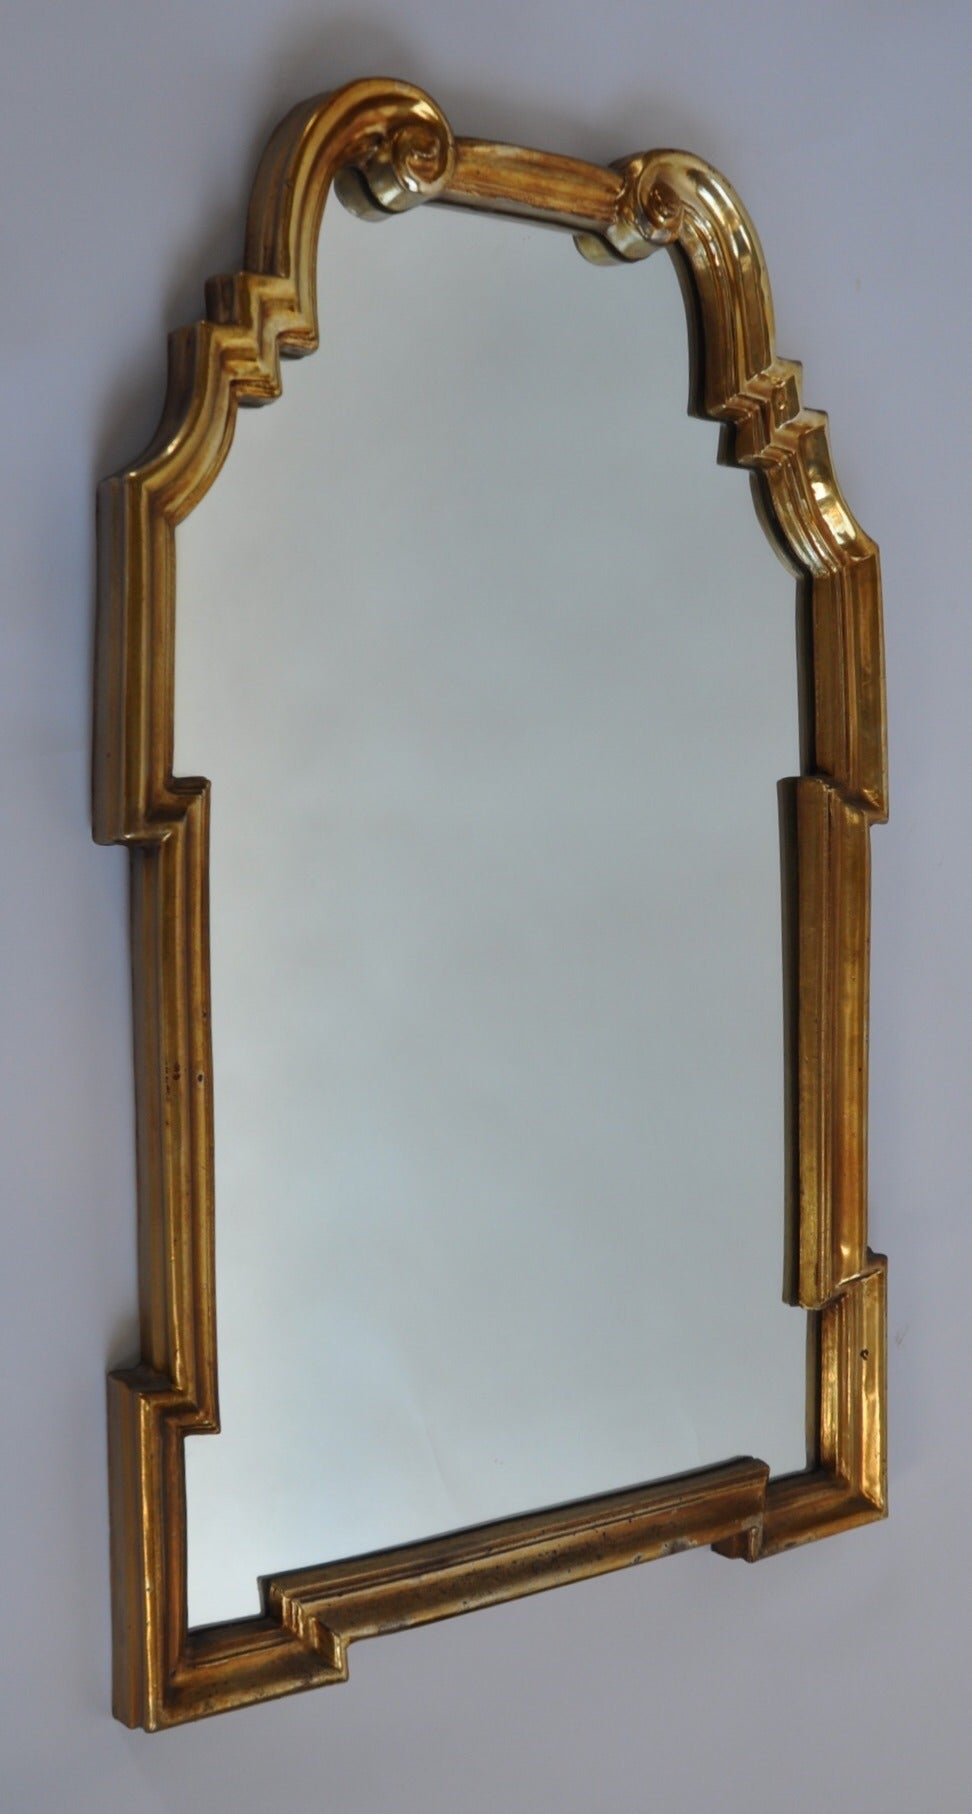 Gold Leaf Mirror By Labarge For Sale At 1stdibs